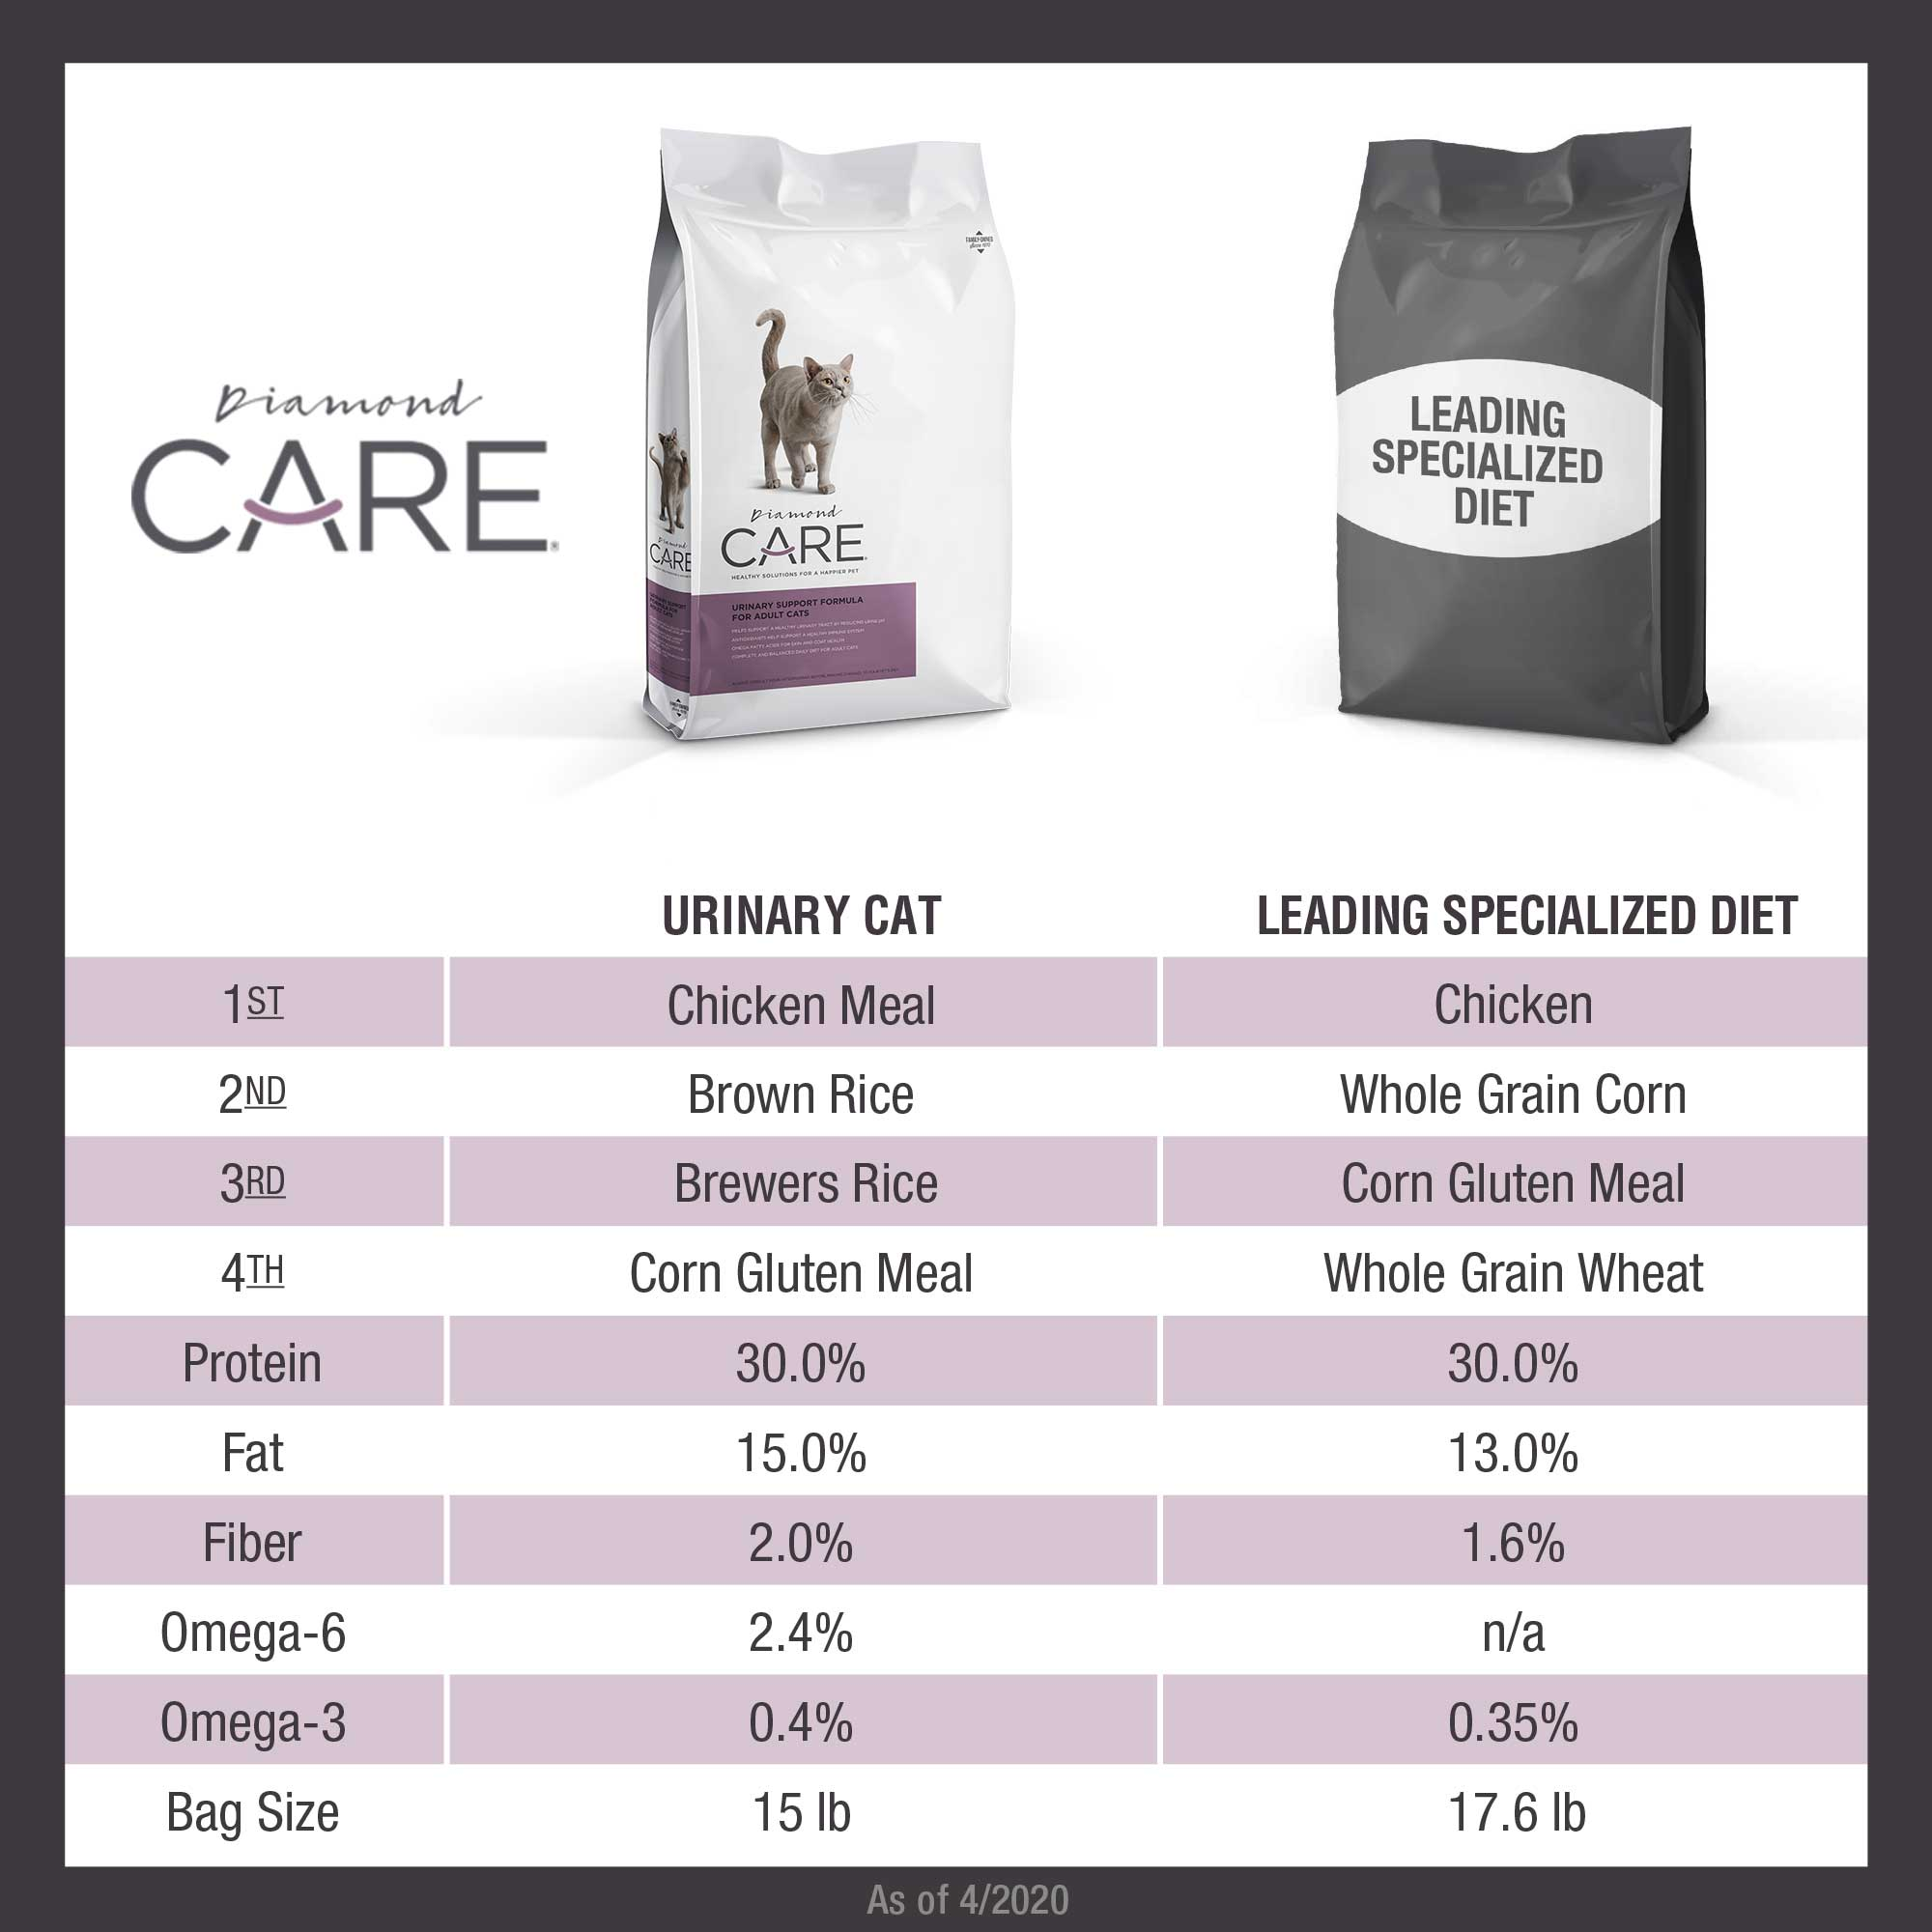 Diamond CARE Urinary Formula for Cats comparison chart | Diamond Pet Foods